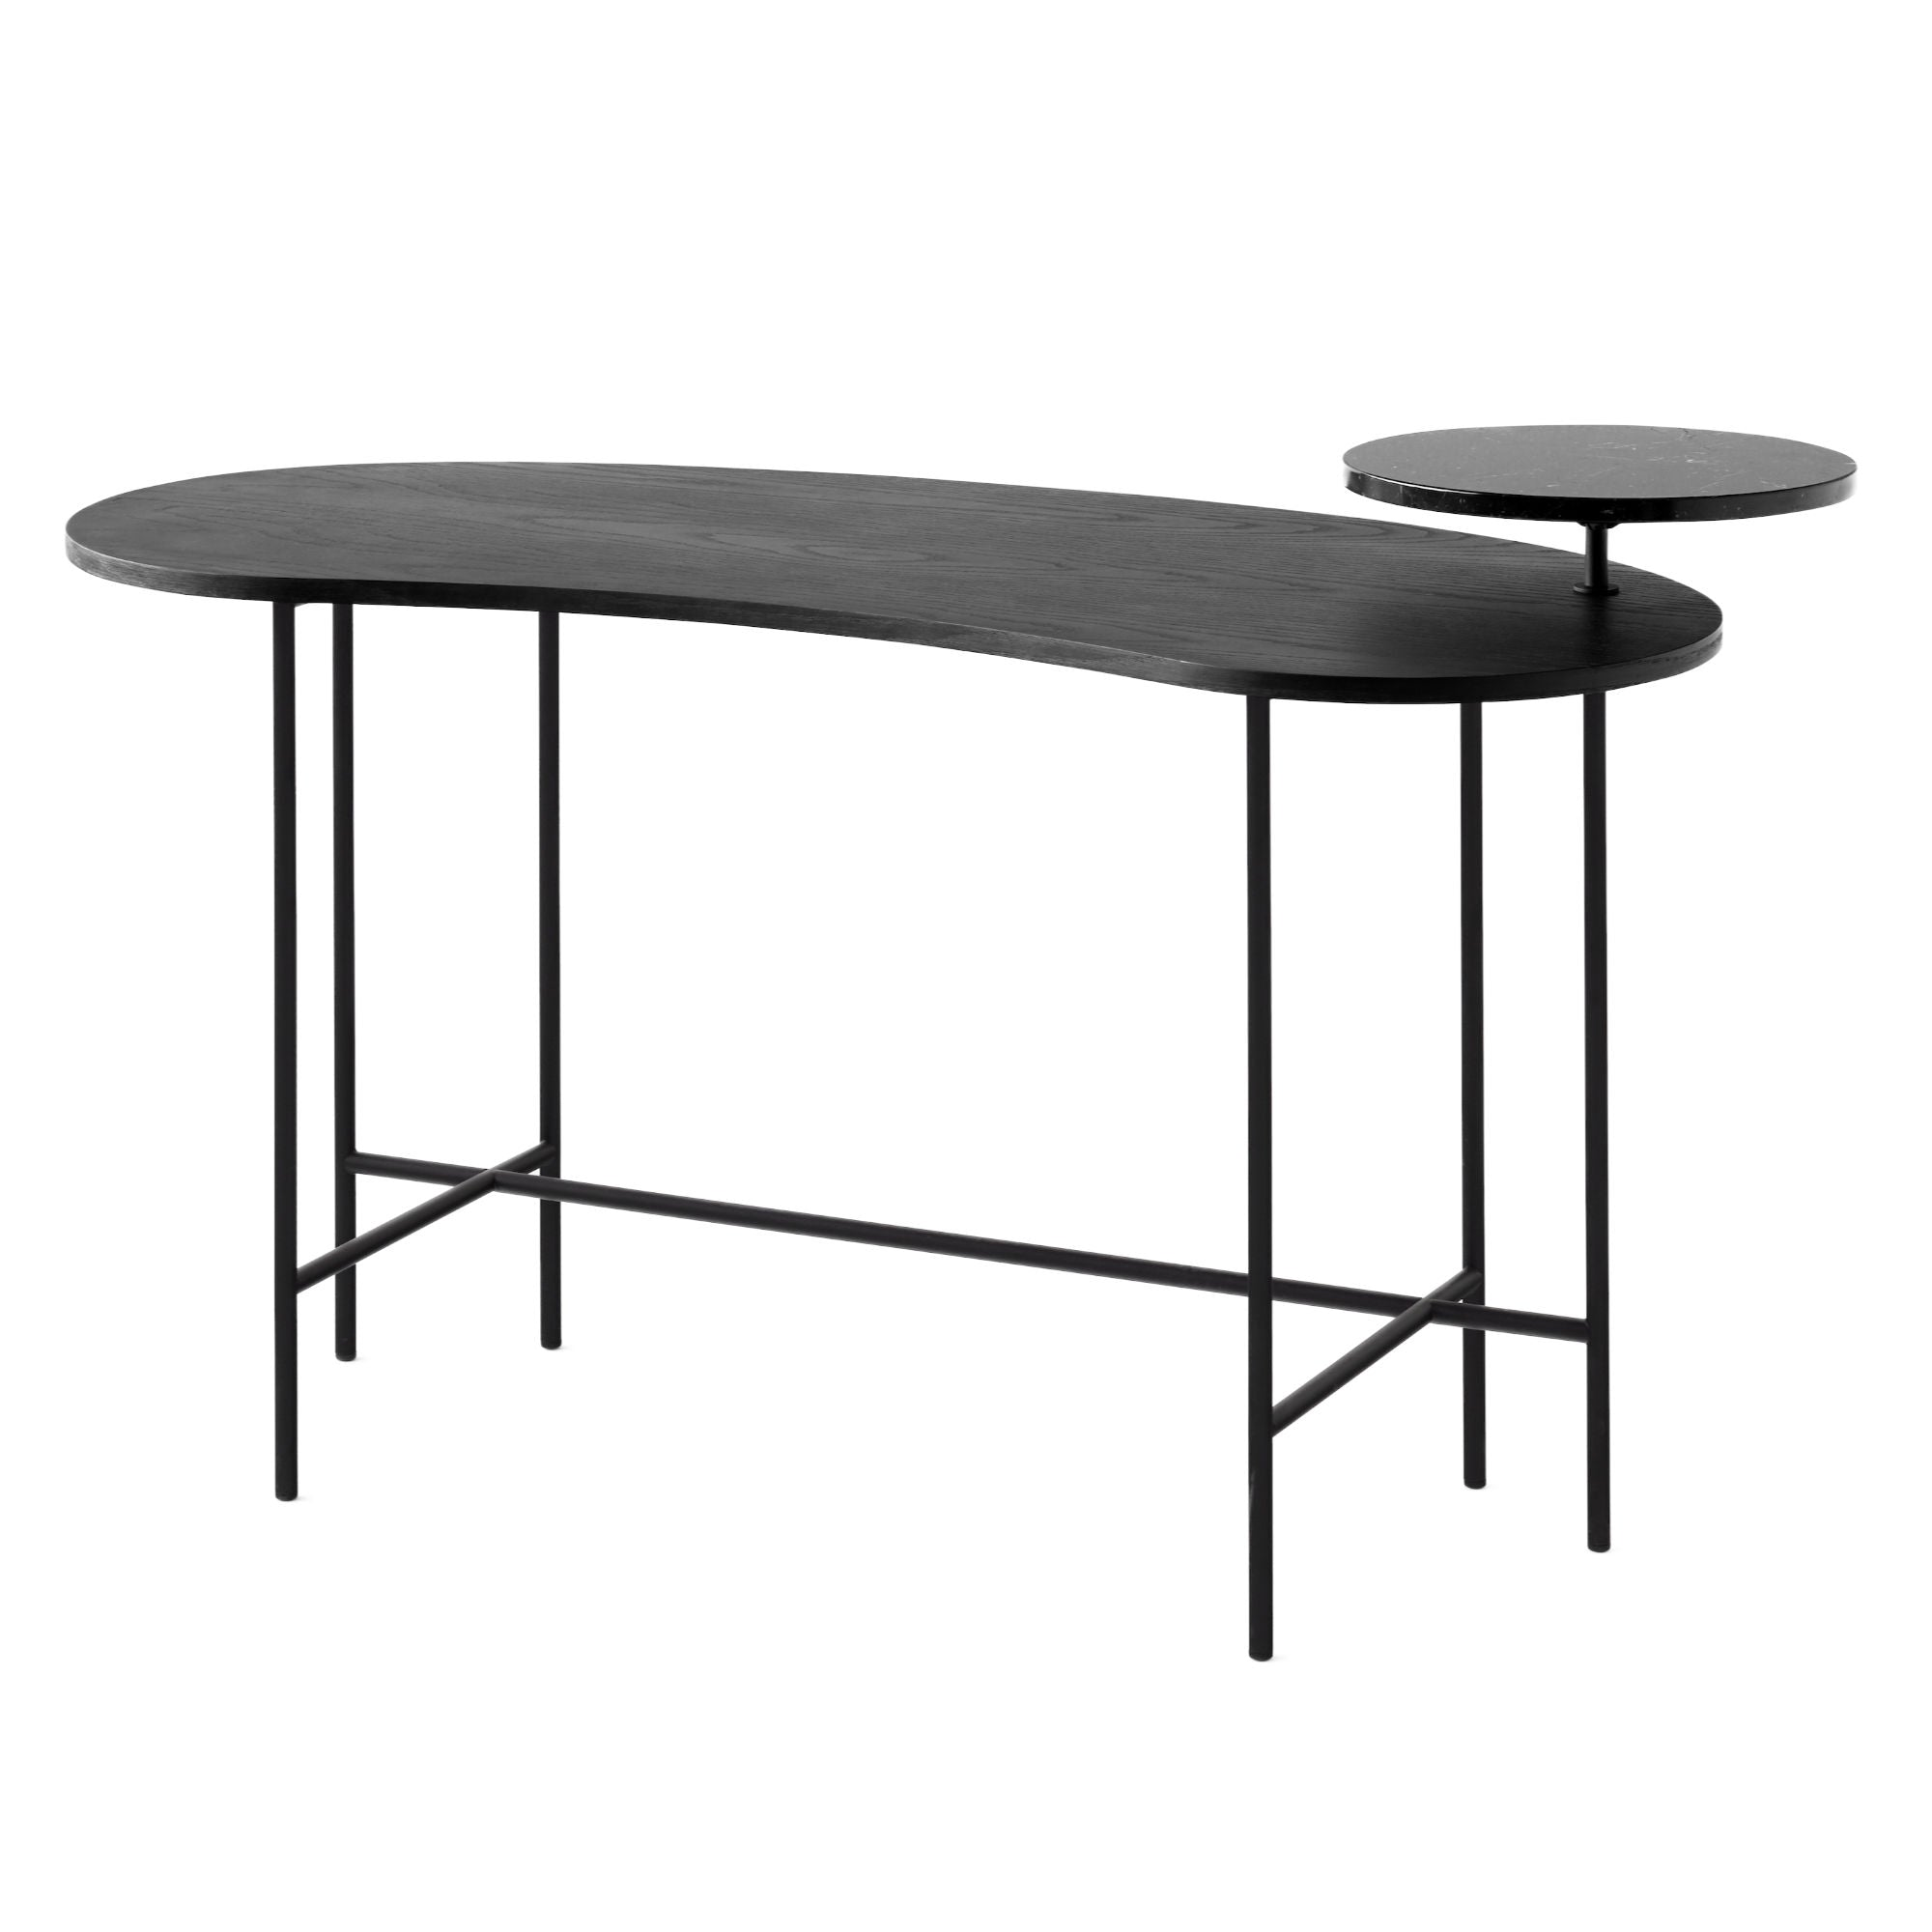 &Tradition JH9 Palette Desk , Nero Marquina Marble-Black Lacquered Ash Veneer